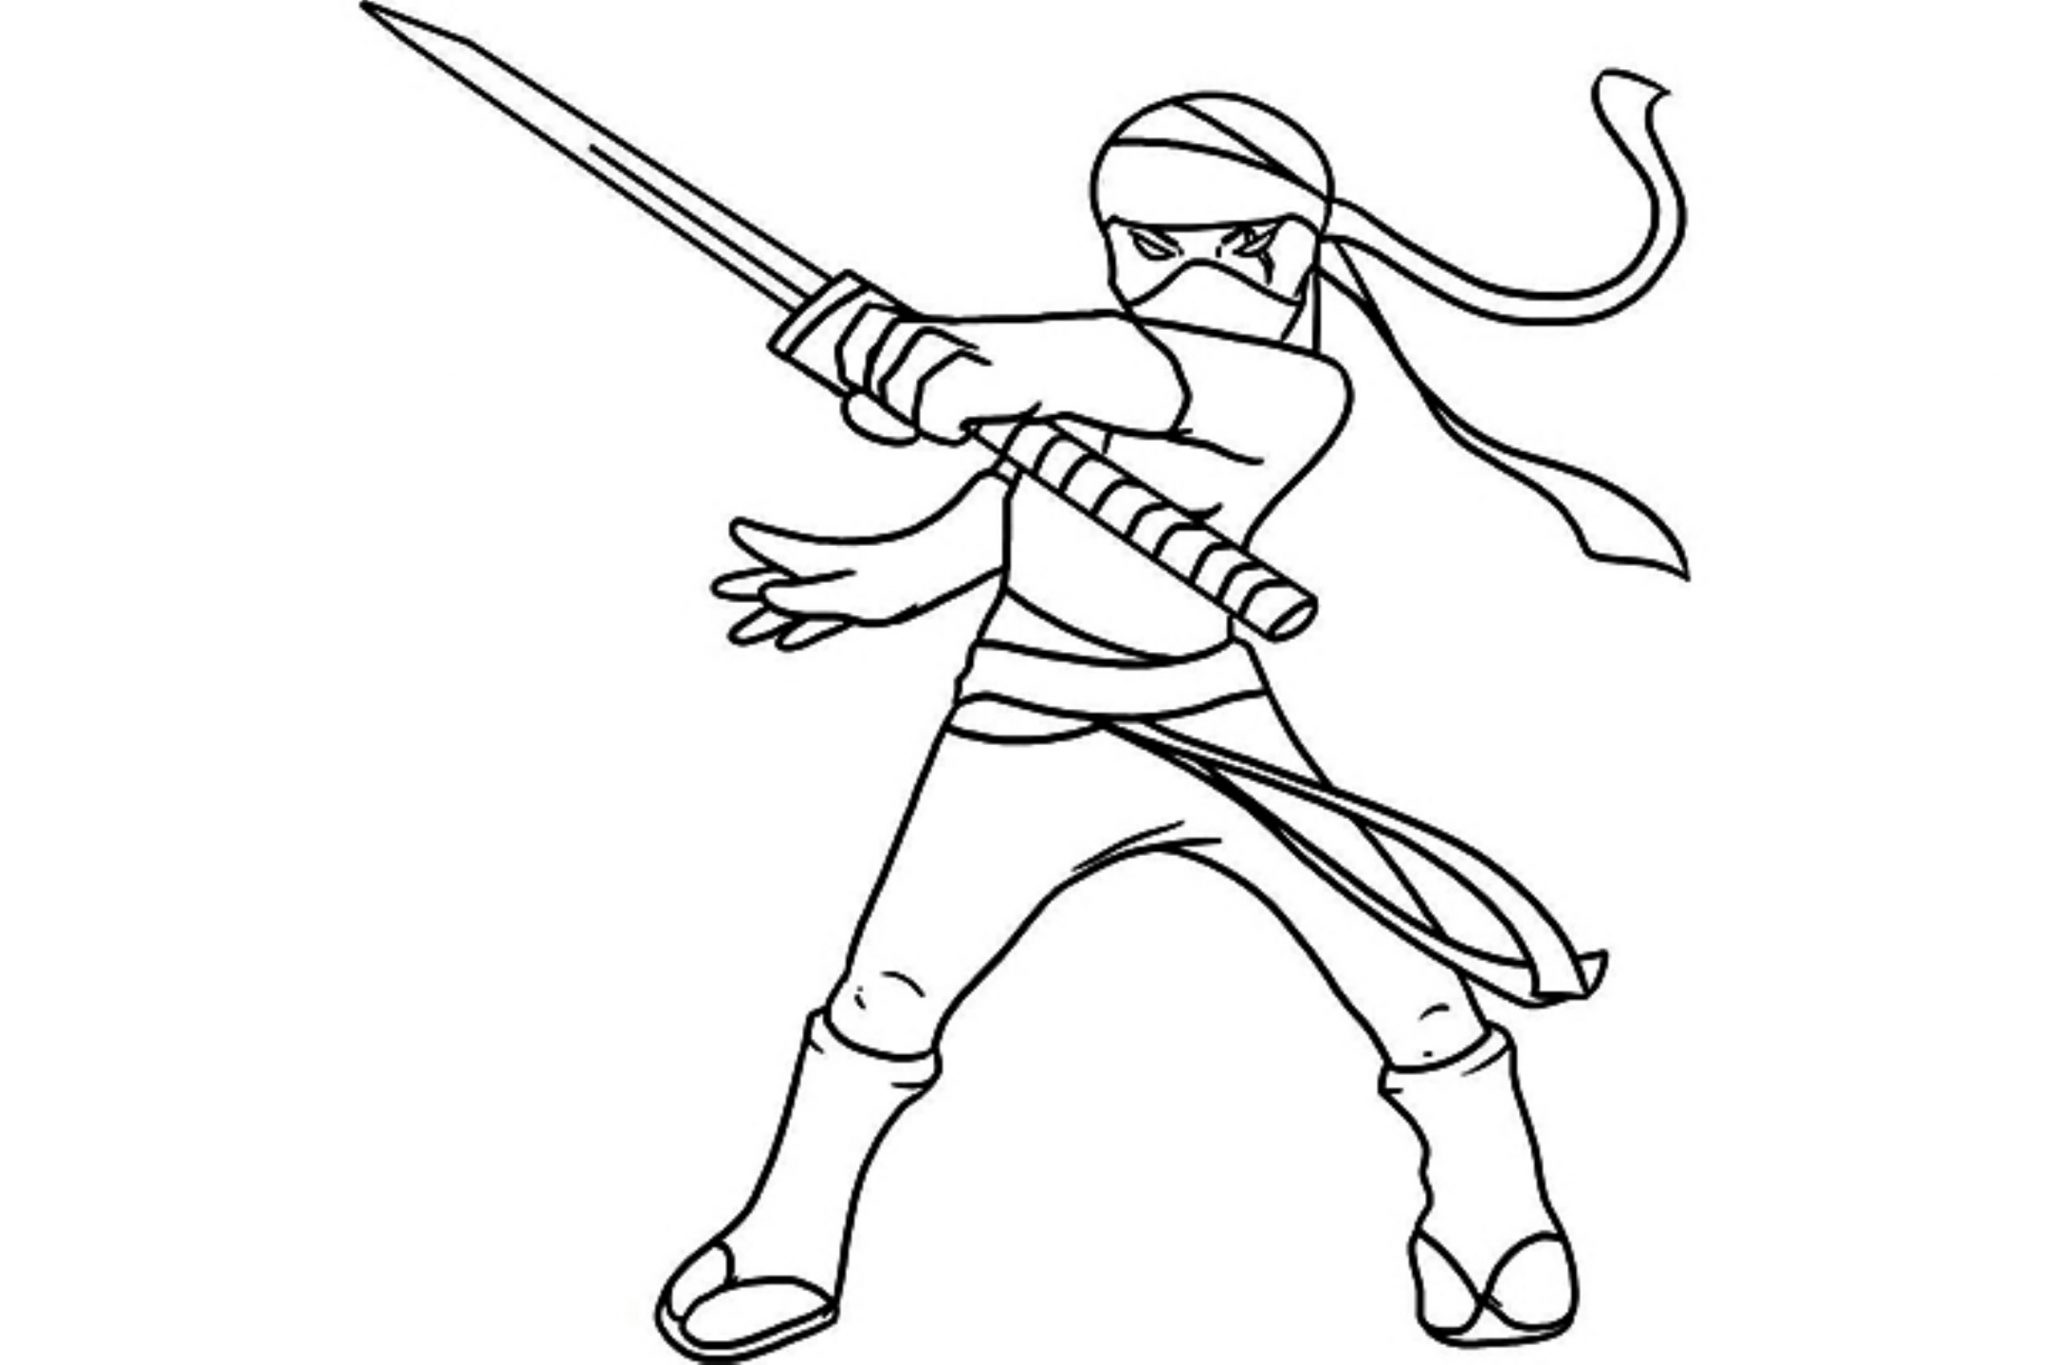 ninja coloring book ninja coloring pages free download on clipartmag book ninja coloring